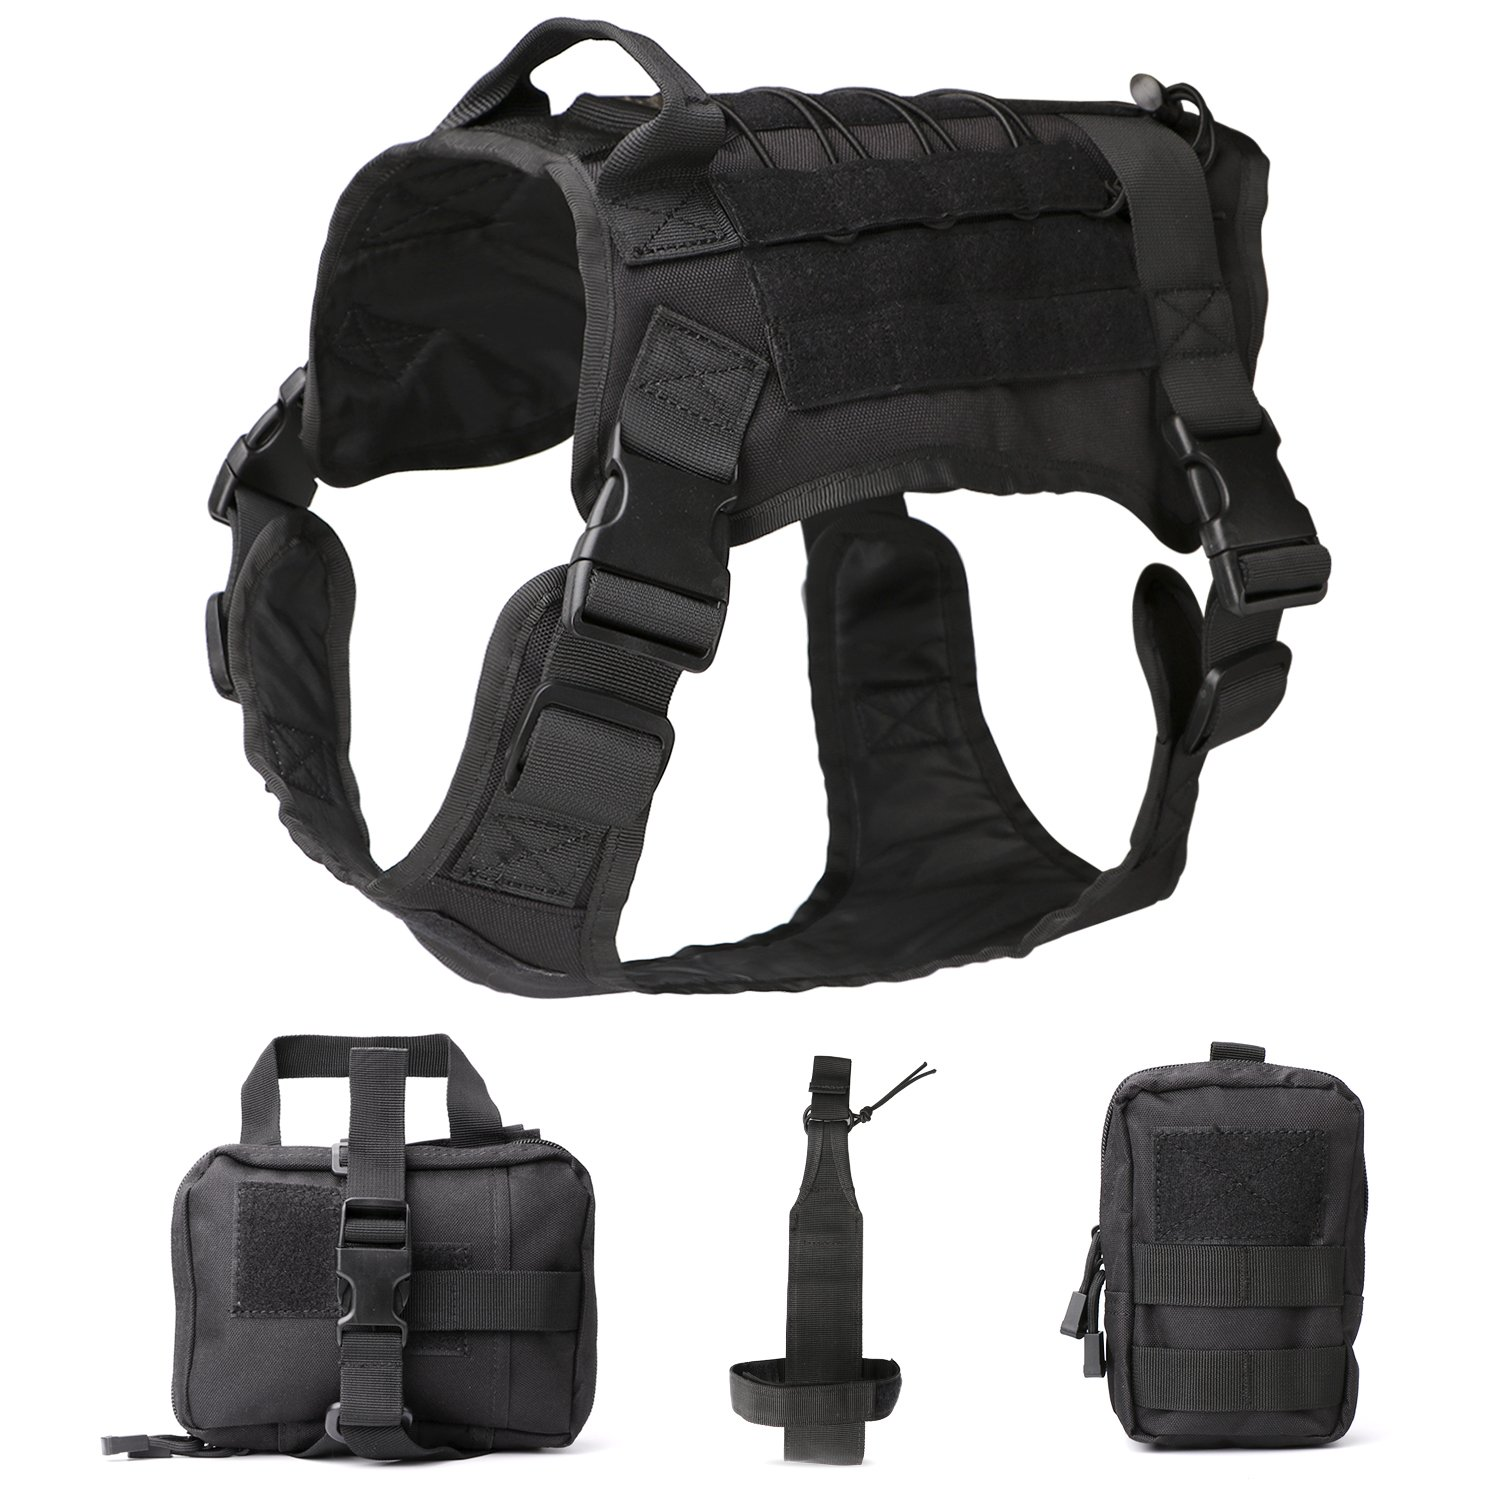 03-Black L 03-Black L JASGOOD Tactical Dog Vest Military Harness with Detachable Molle Pouches Patches Outdoor Training Handle Service Dog Vest (L, 03-Black)